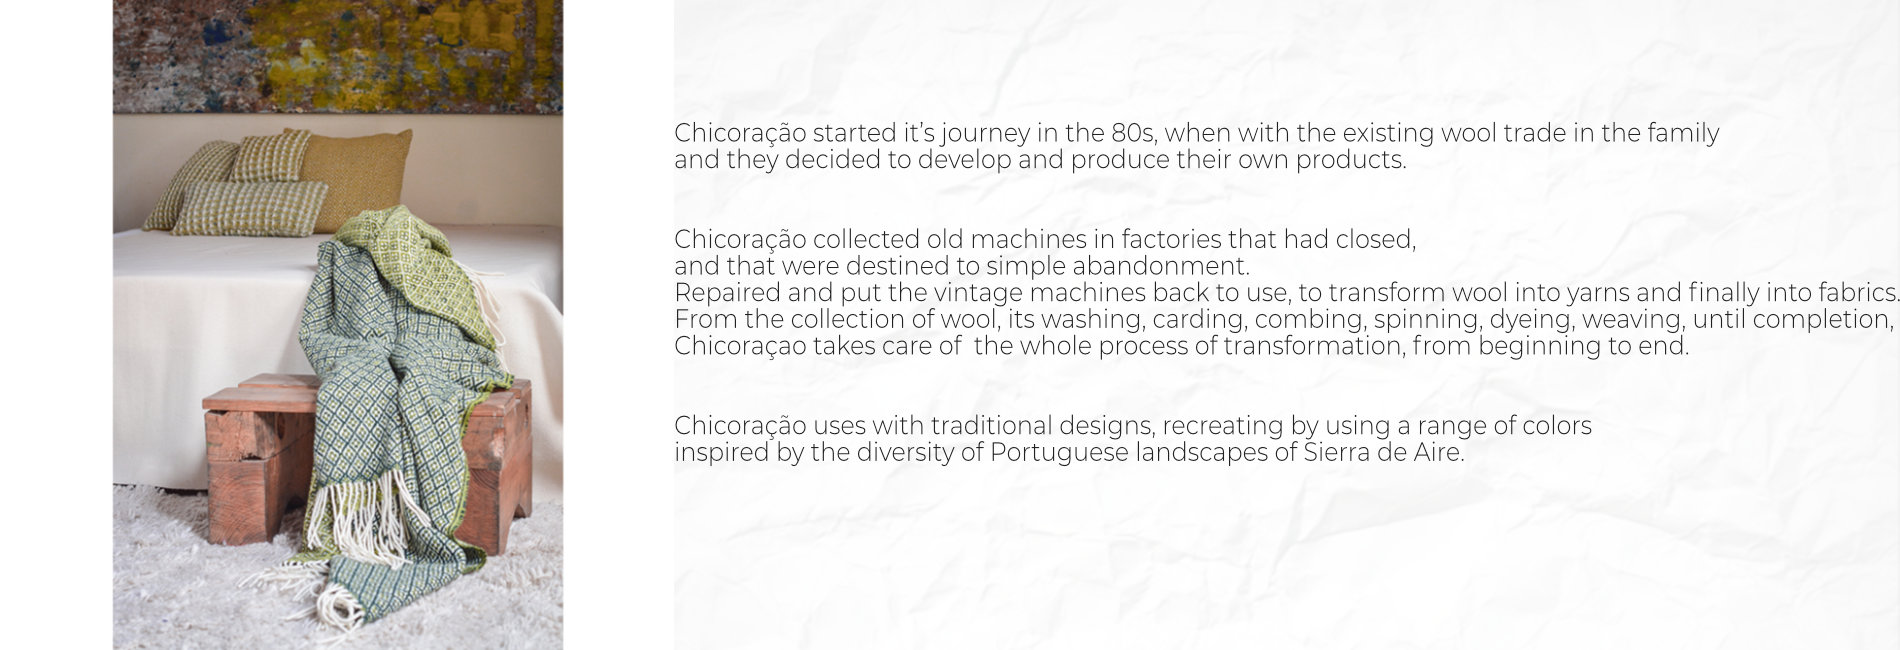 chicoracao brand image